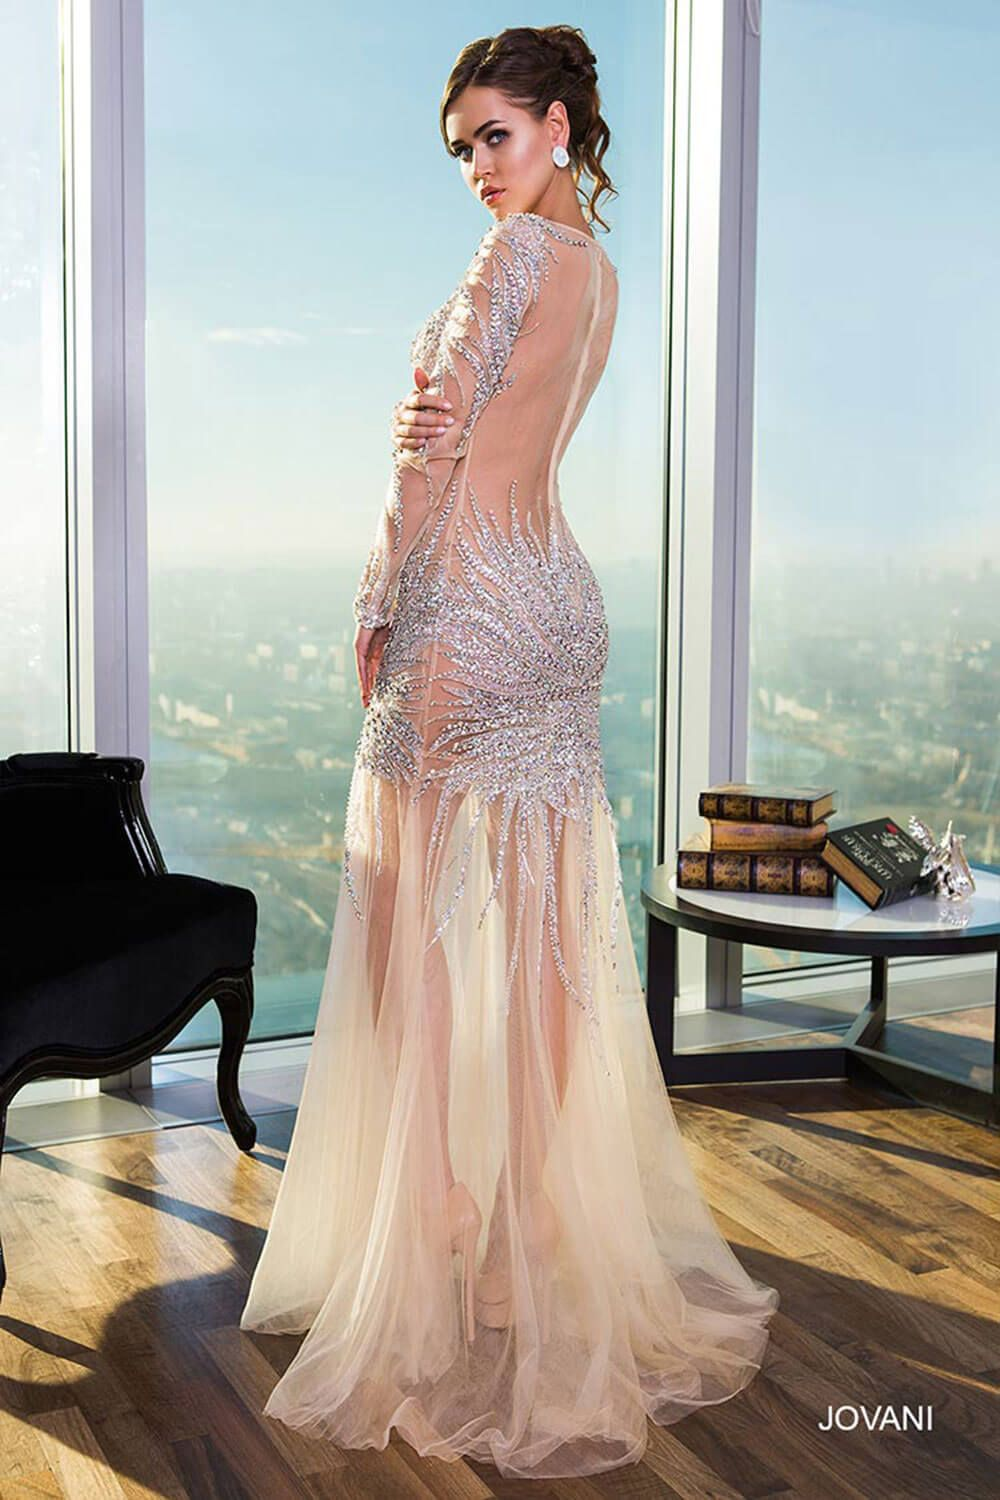 Long Sleeve Nude Gown 21697 - Evening Dresses